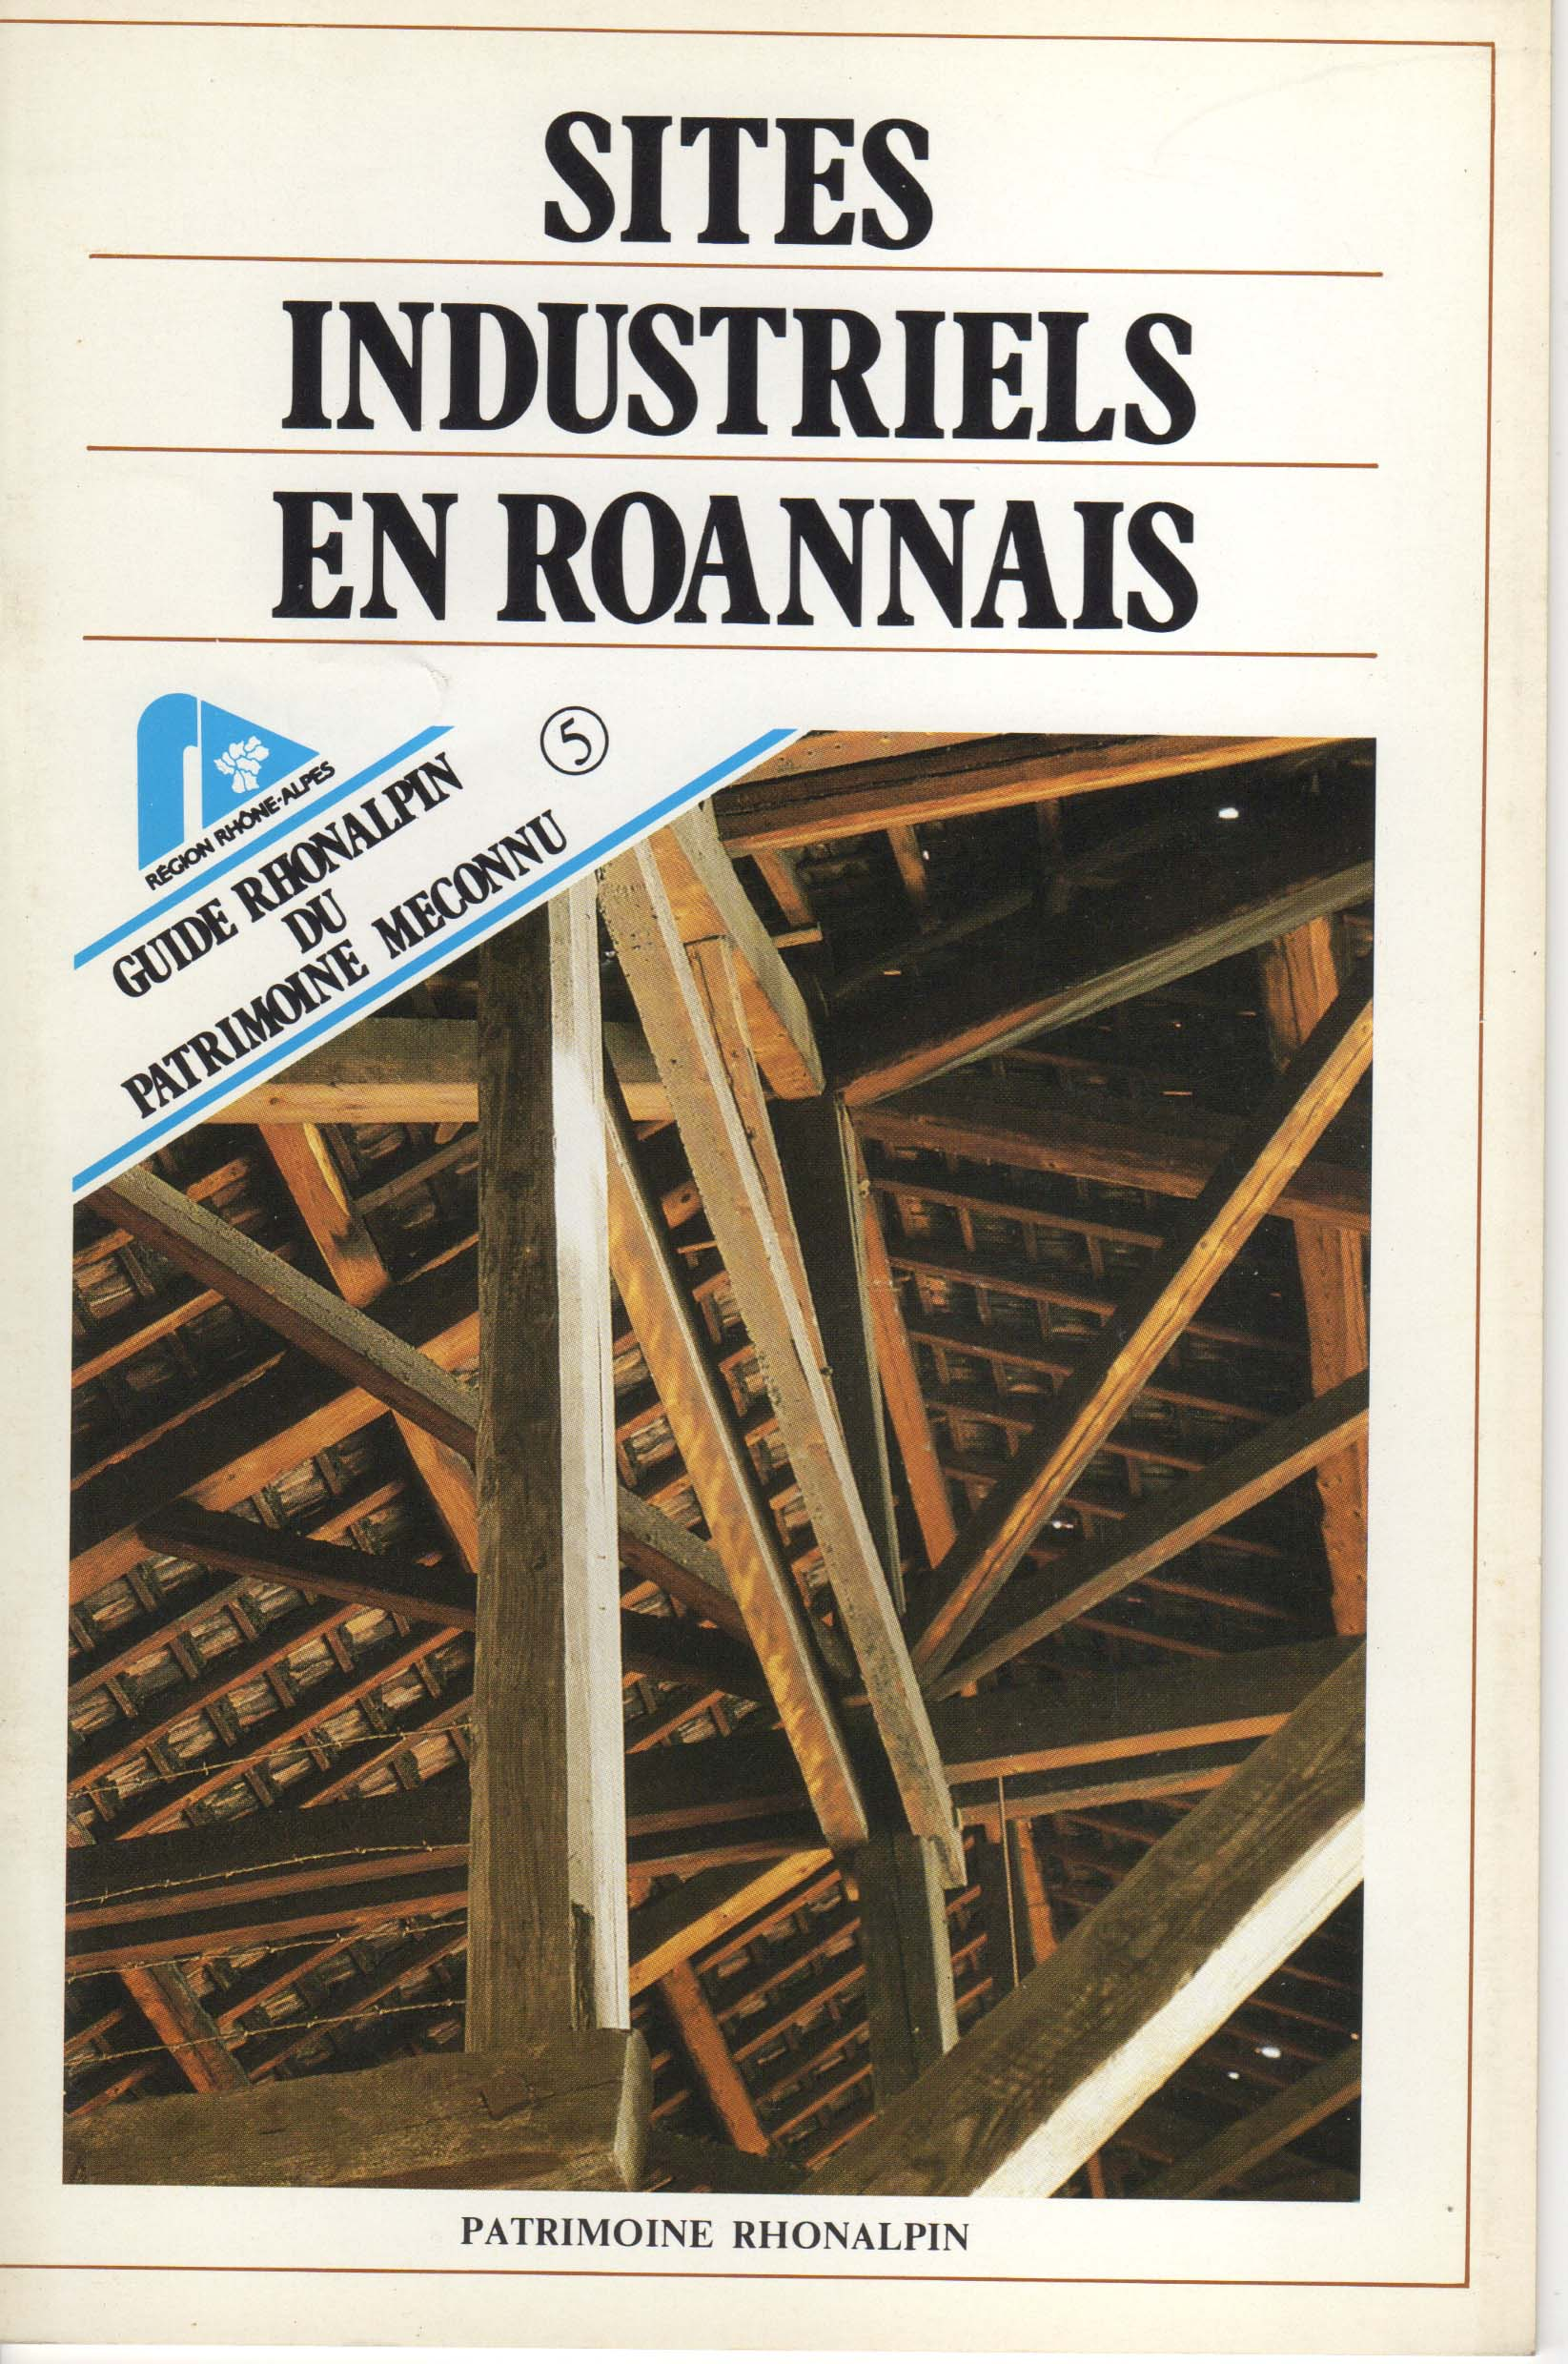 Guide n°5 – Sites industriels en roannais